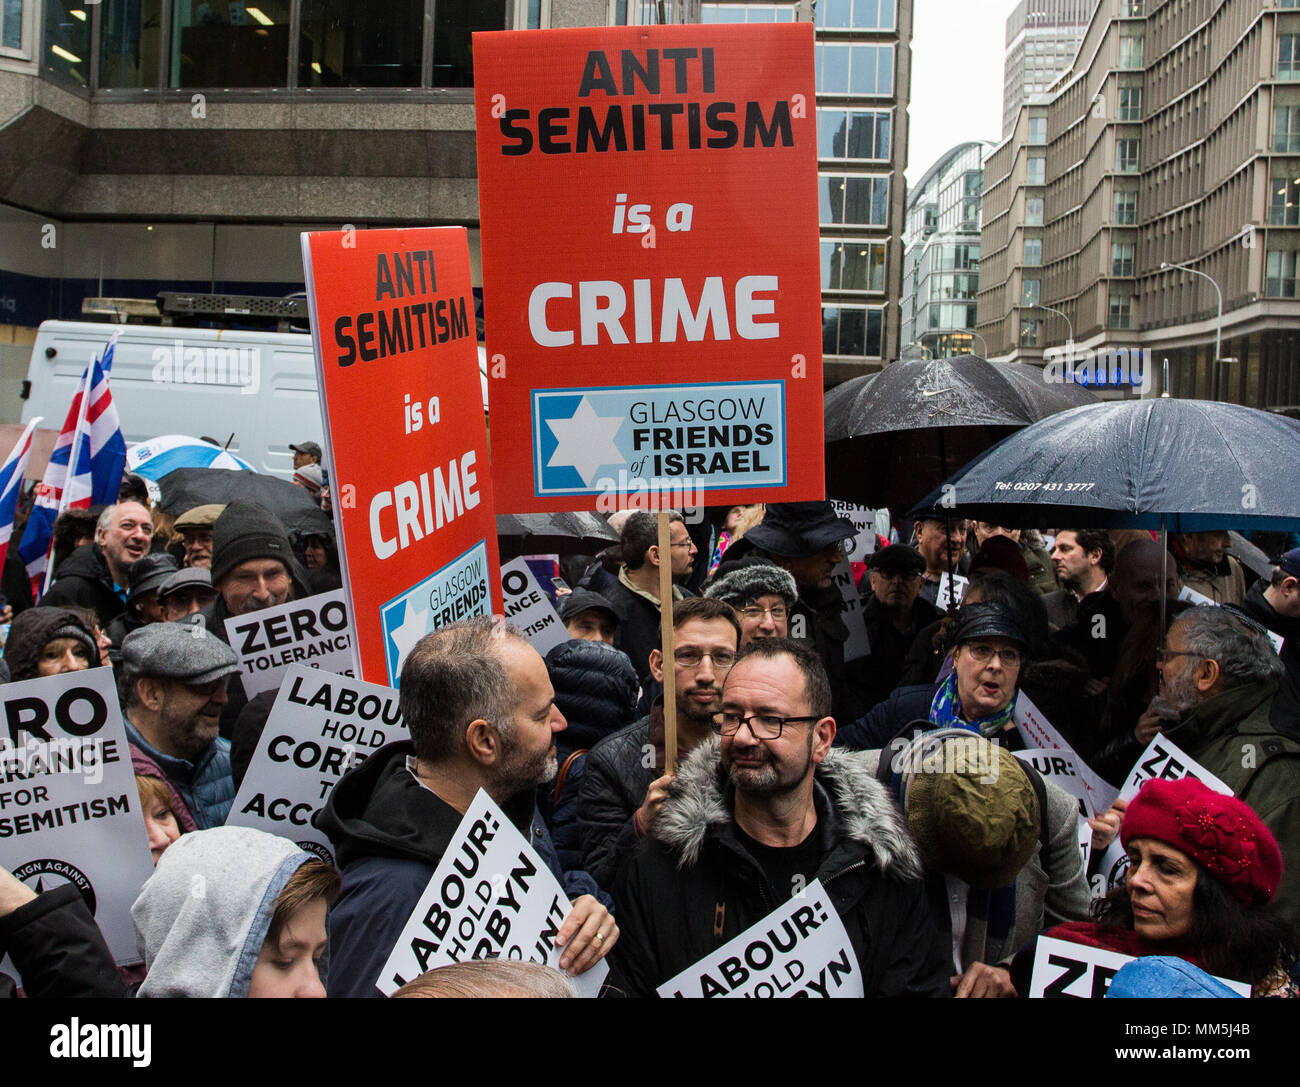 Amid disputes over the Labour party's handling of claims of anti-semitism, Campaign Against Antisemitism stage demonstration at Labour Party head office in Victoria.  Featuring: Atmosphere, View Where: London, England, United Kingdom When: 08 Apr 2018 Credit: Wheatley/WENN - Stock Image